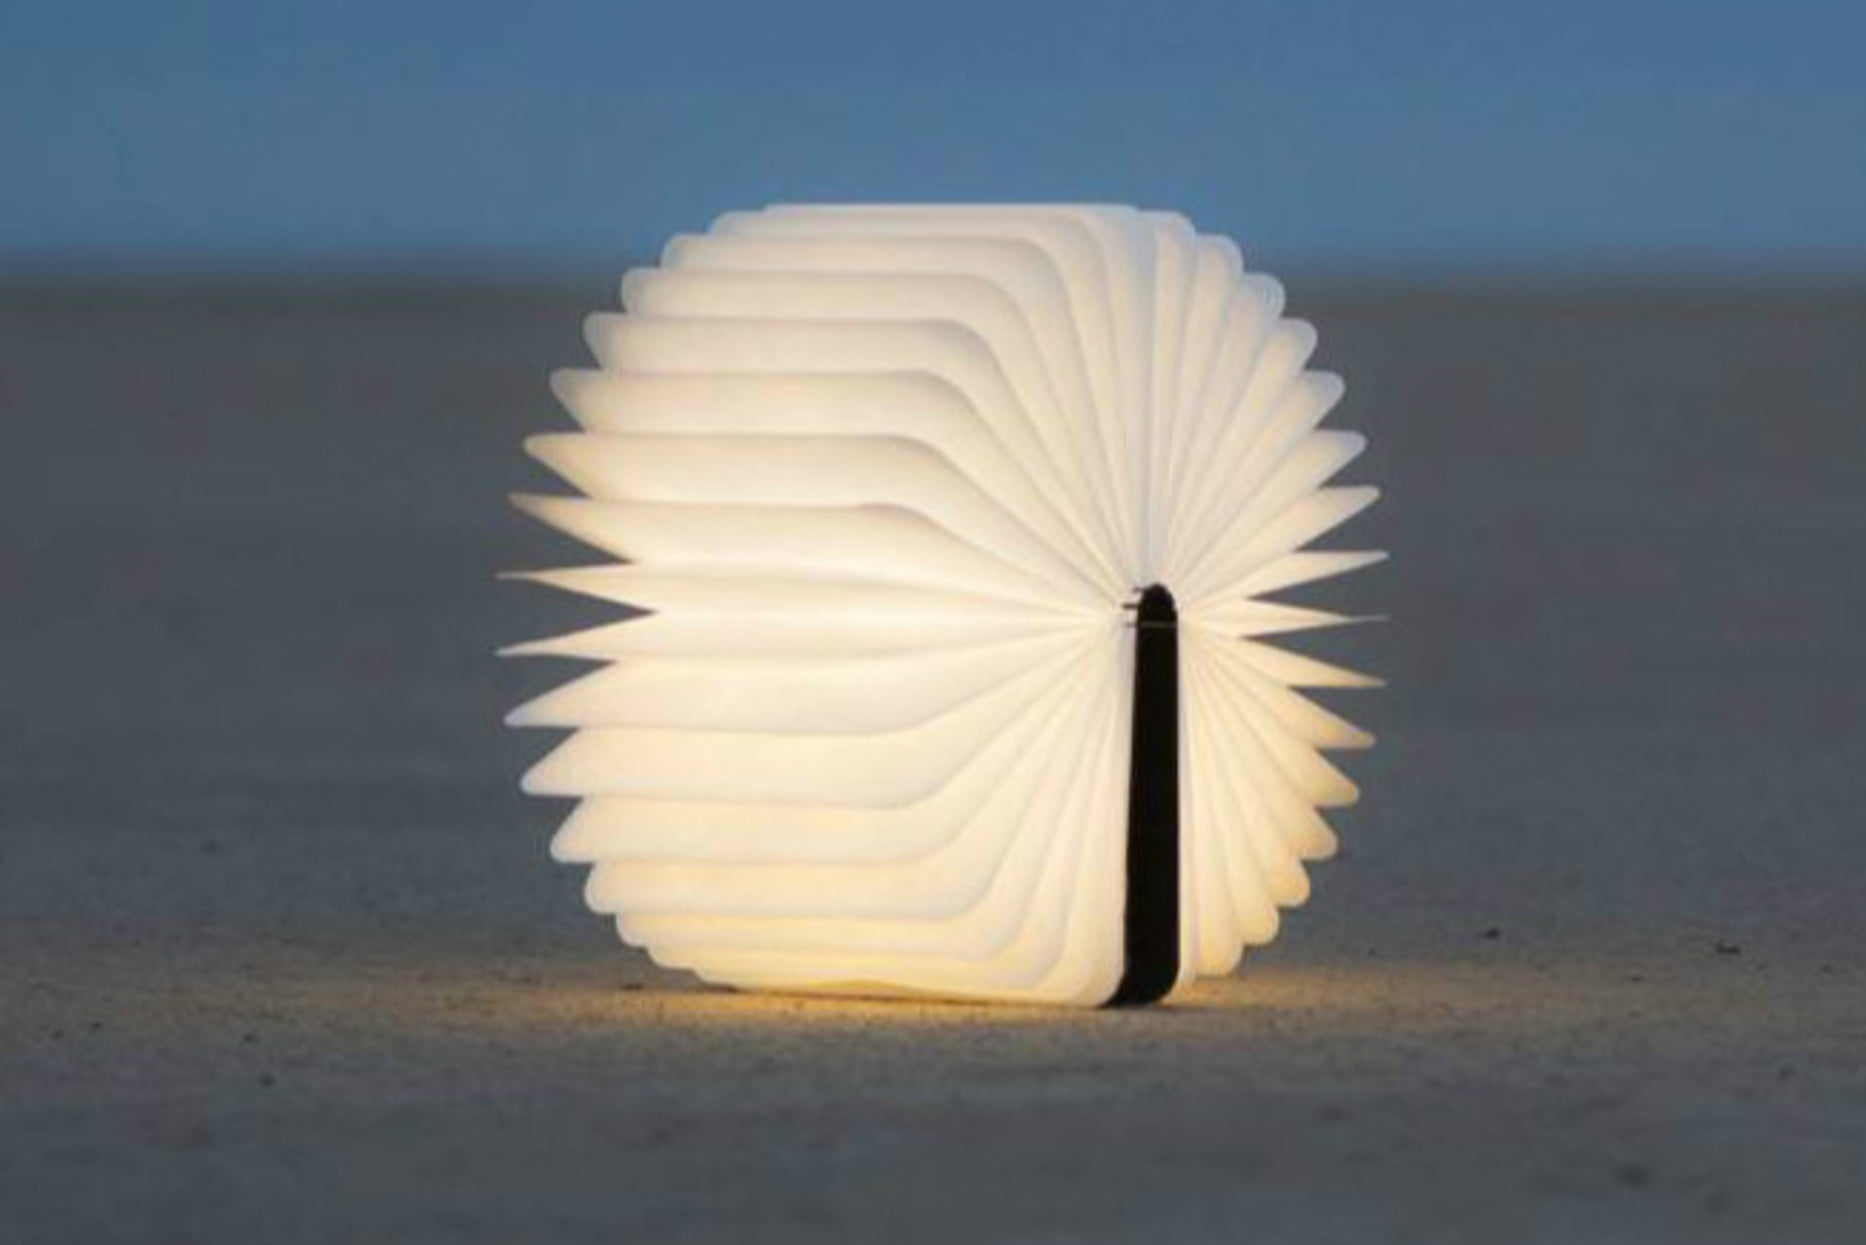 photos of amazing lamps and lights lumio 4